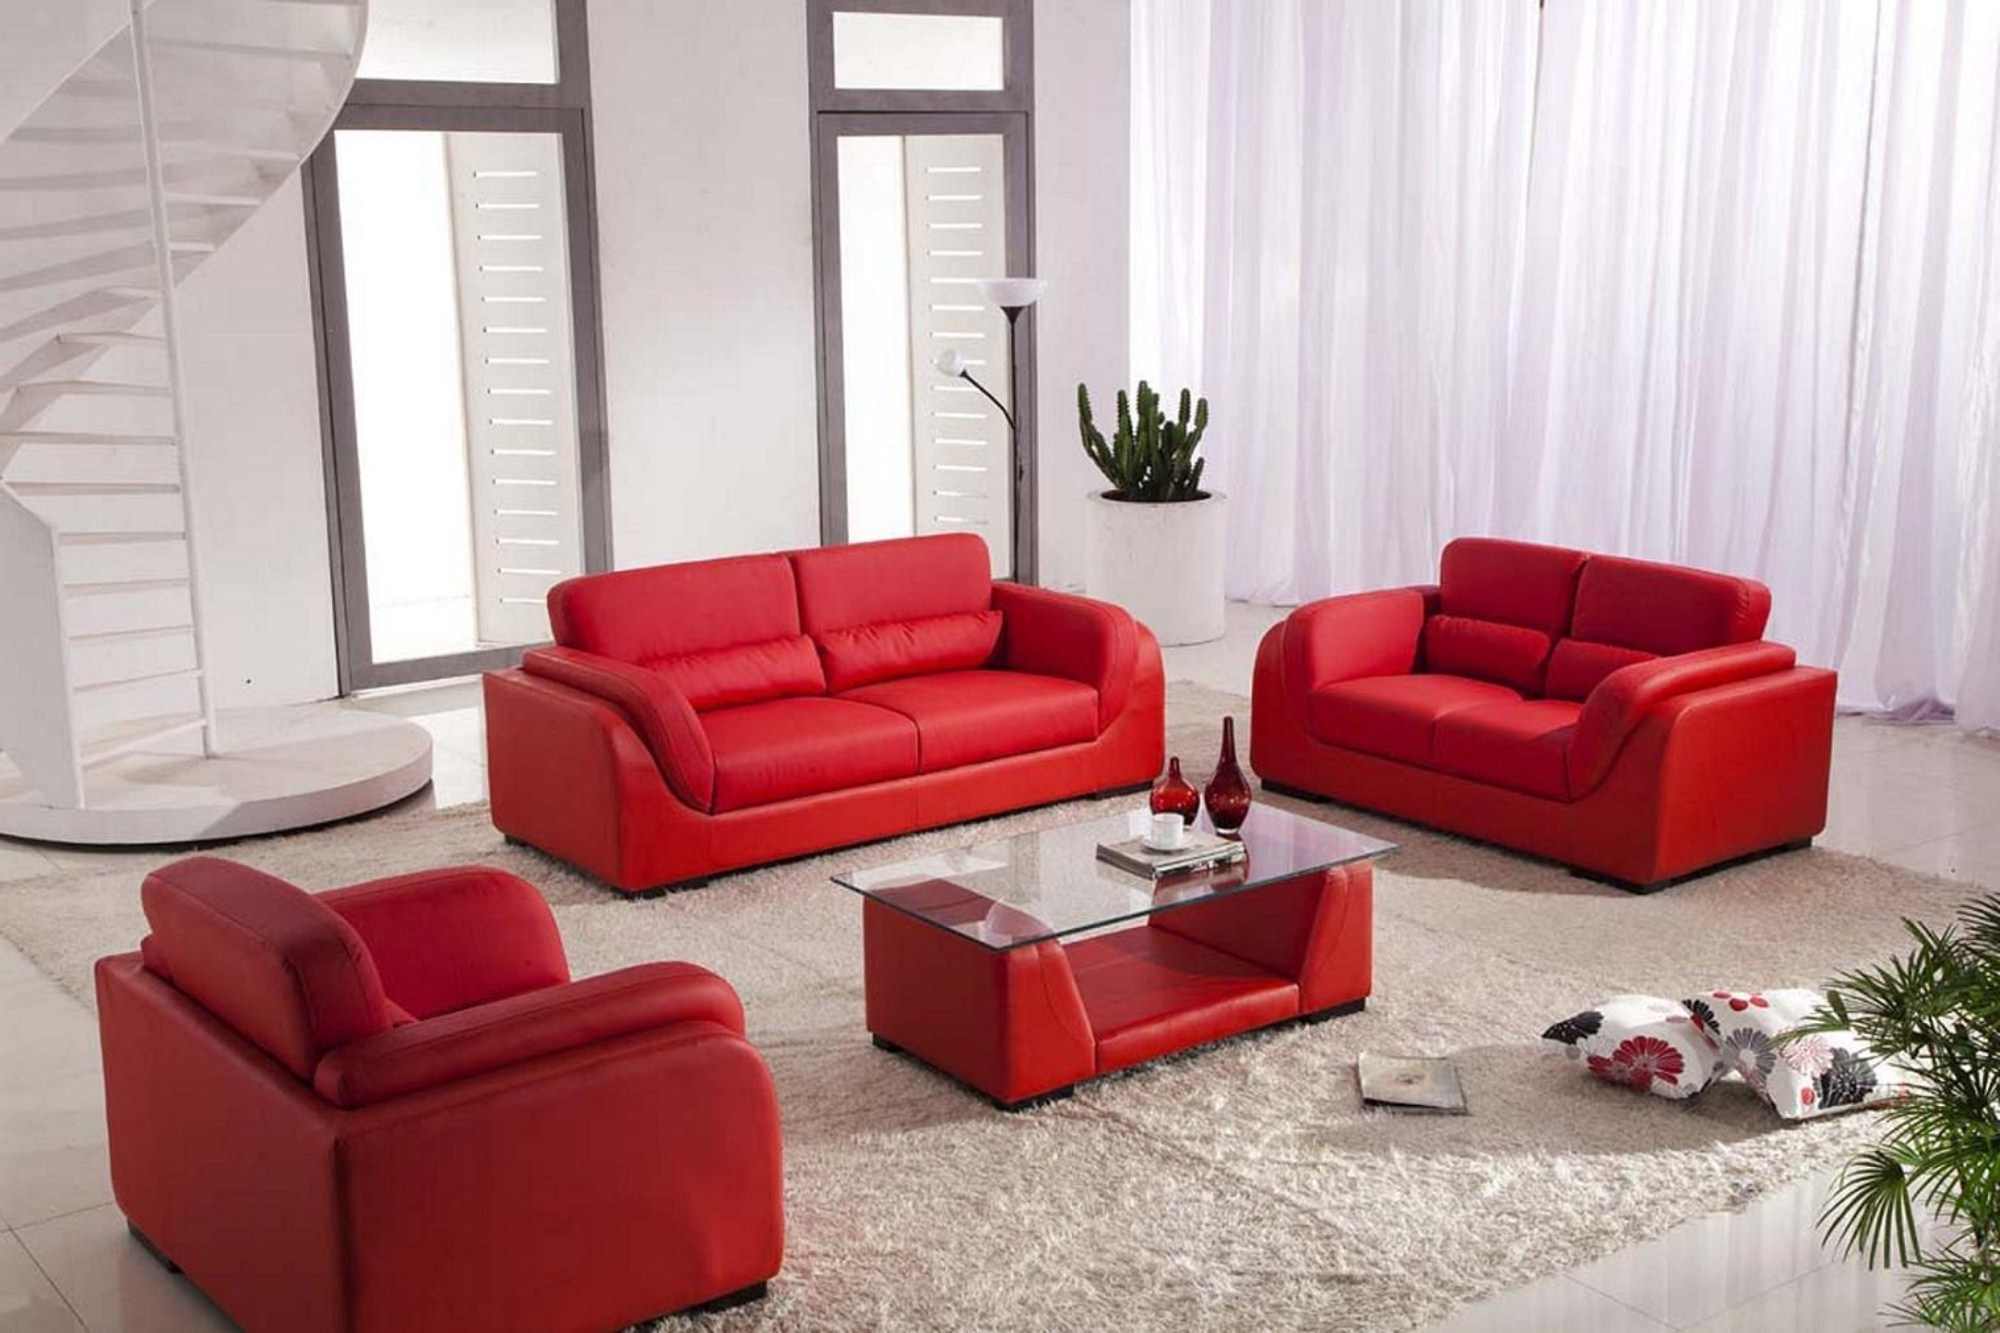 Most Popular Living Room Attractive Ideas With Red Leather Sofa And Glass Table Regarding Red Leather Couches For Living Room (View 6 of 15)